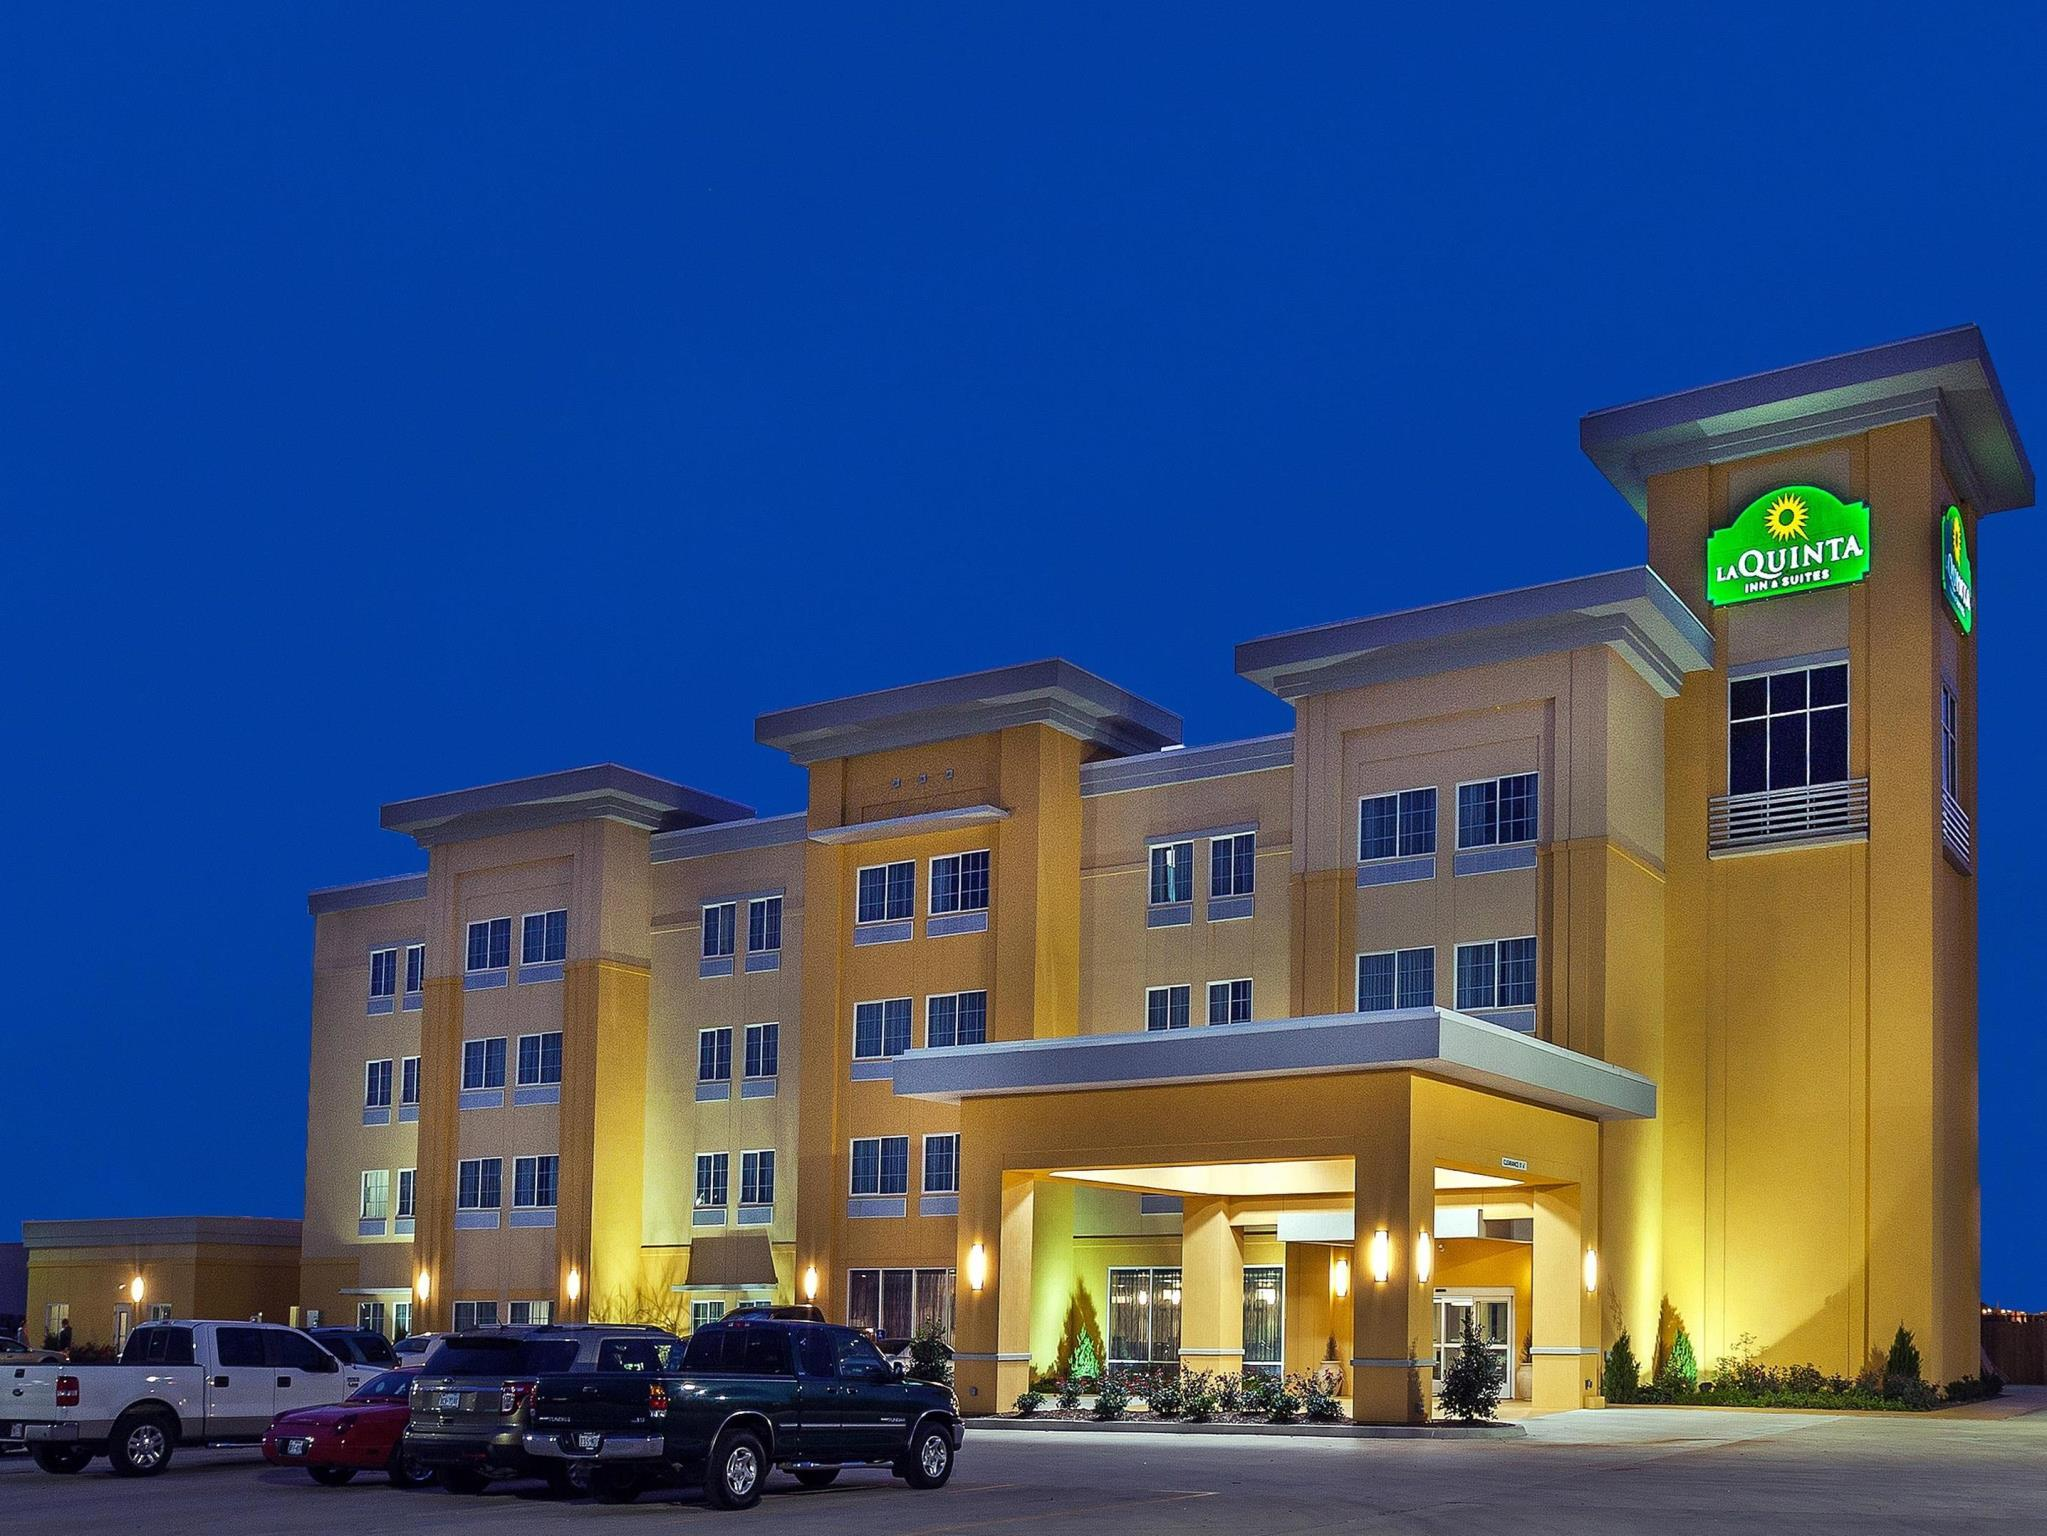 La Quinta Inn And Suites By Wyndham Durant